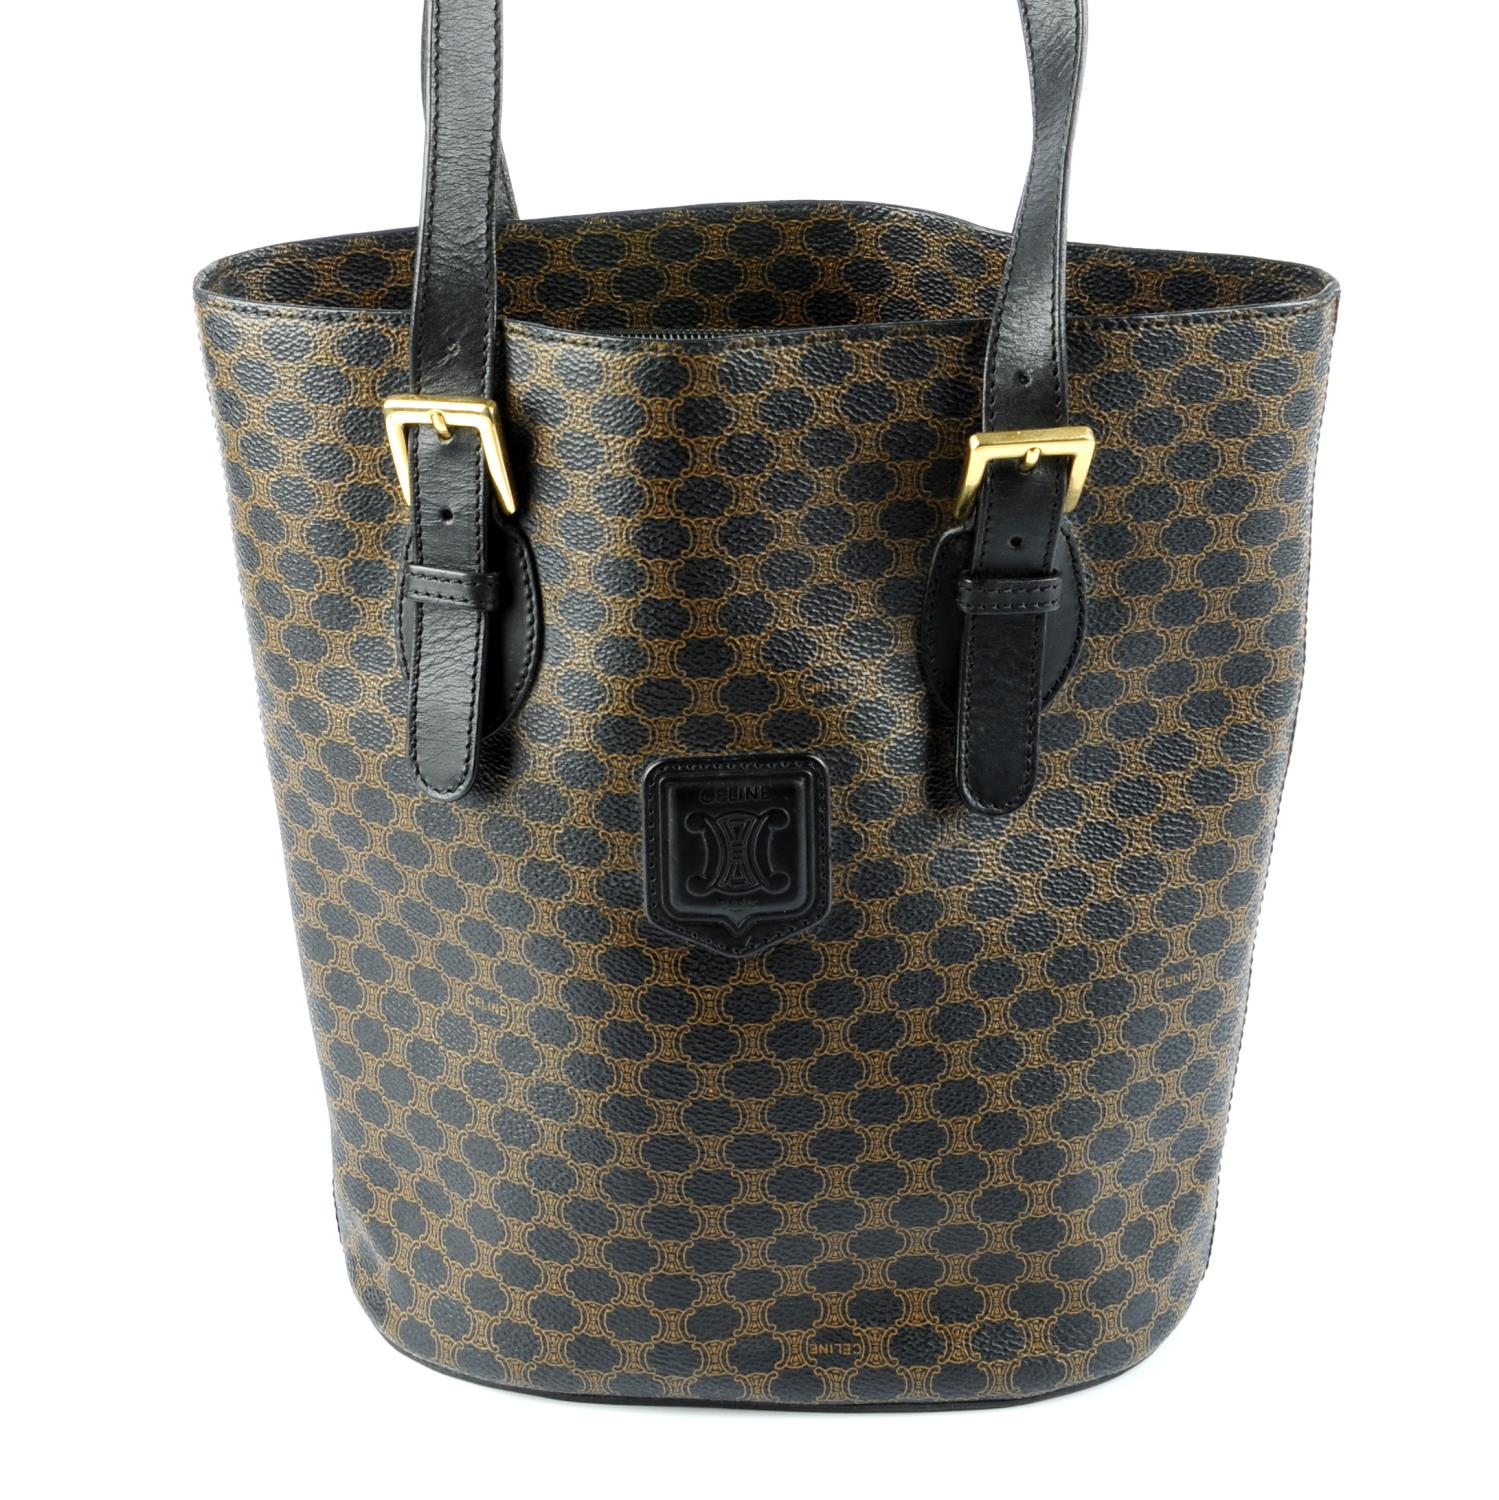 Lot 38 - CÉLINE - a Macadam coated canvas bucket handbag.